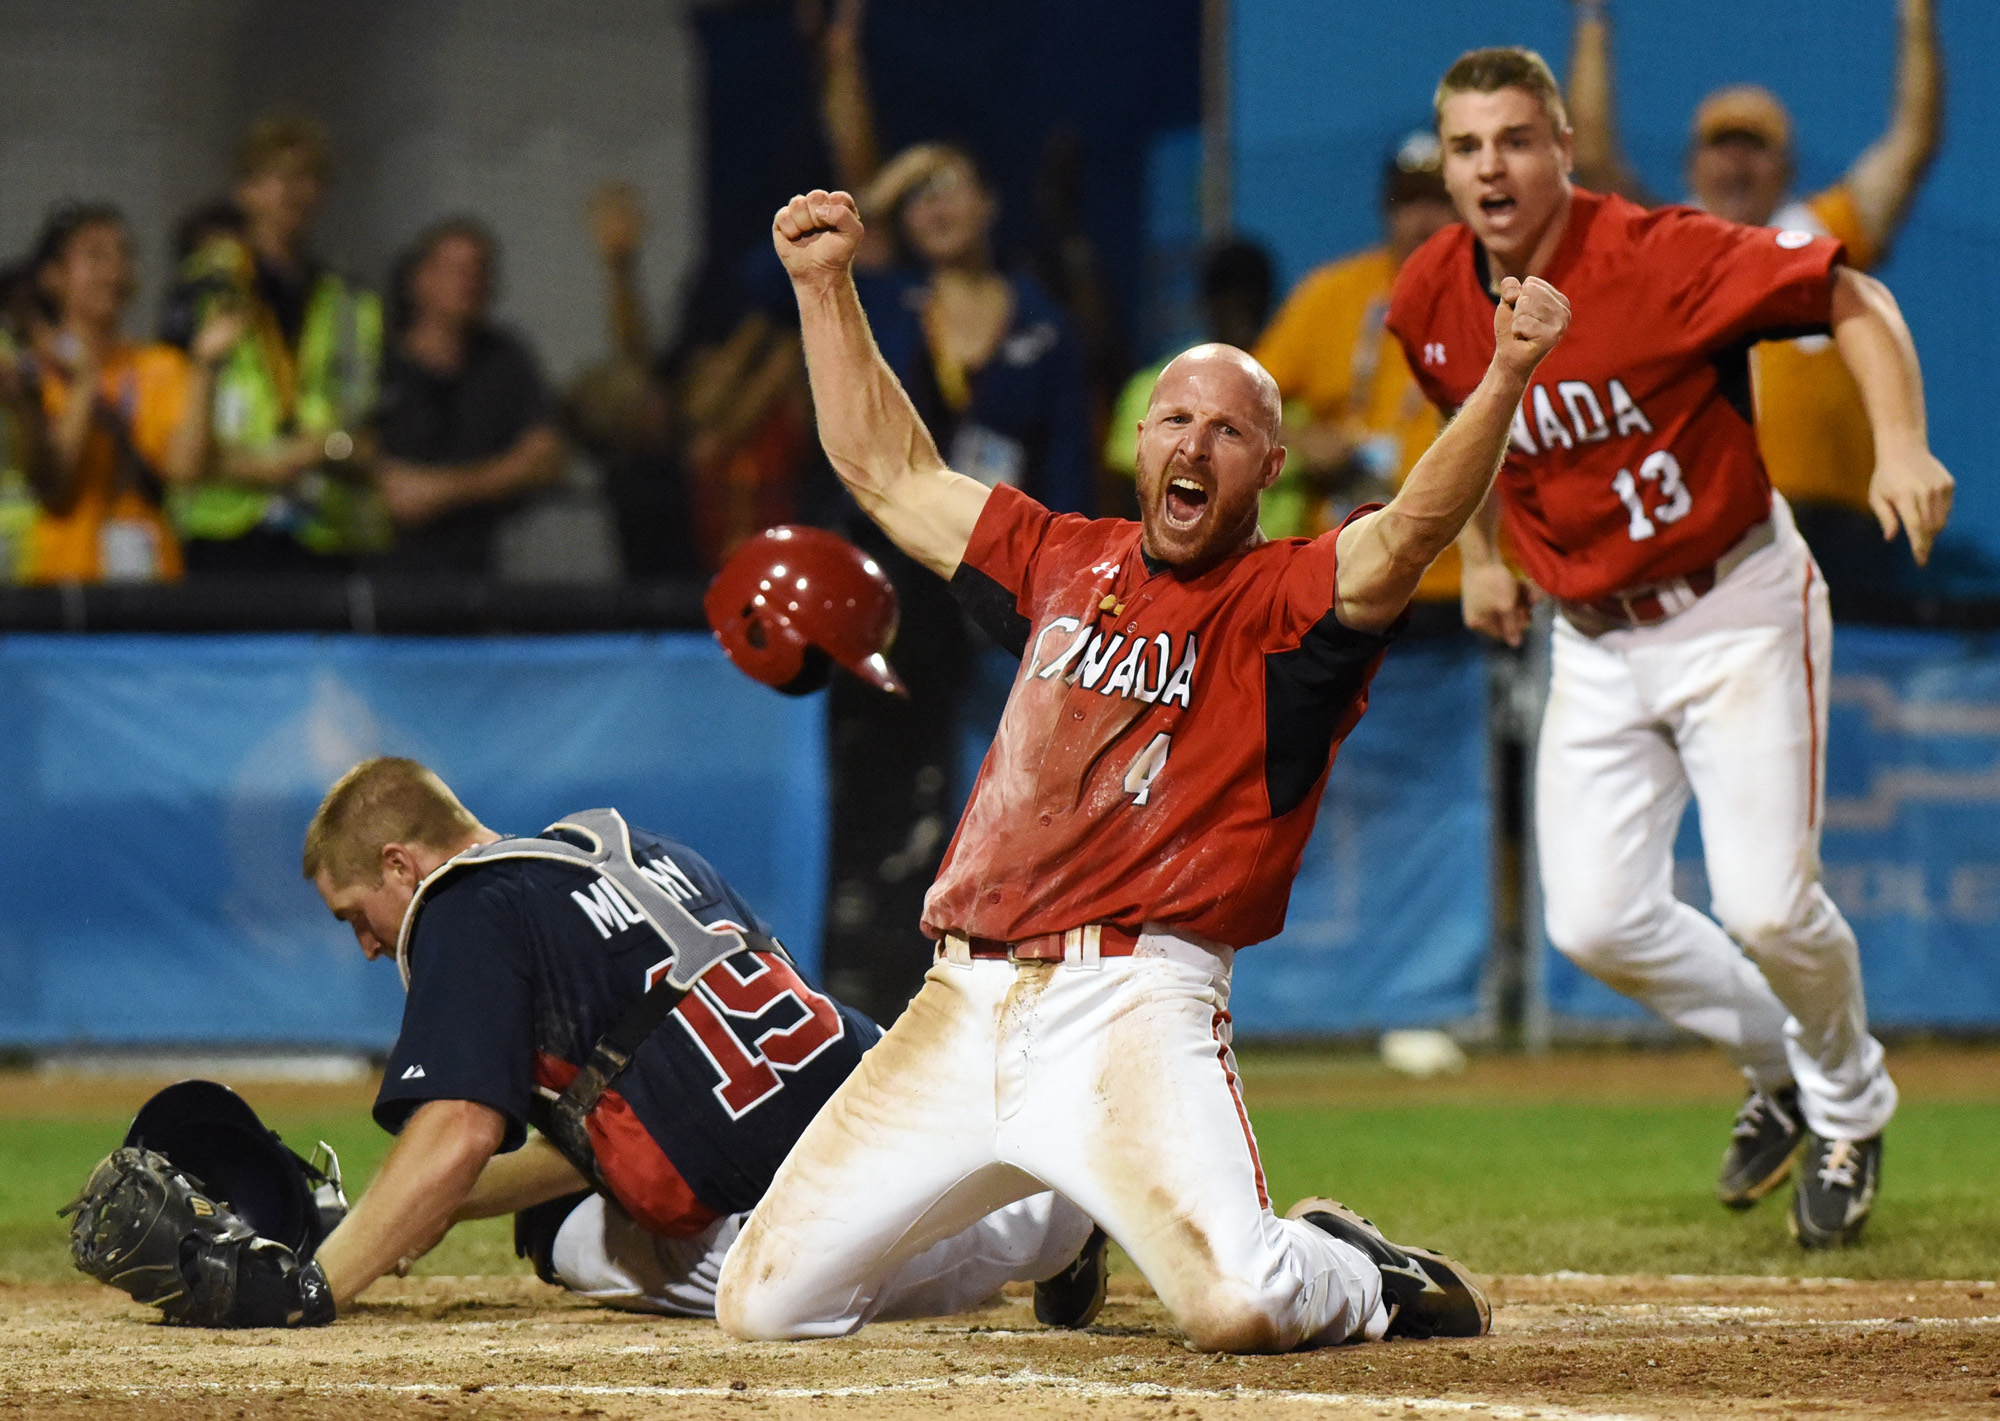 And with the head first slide Peter Orr is safe and Canada wins gold with one out in the bottom of the 10th at the Pan Am Games in Ajax. Photo:Ryan Pfeiffer/Metroland.